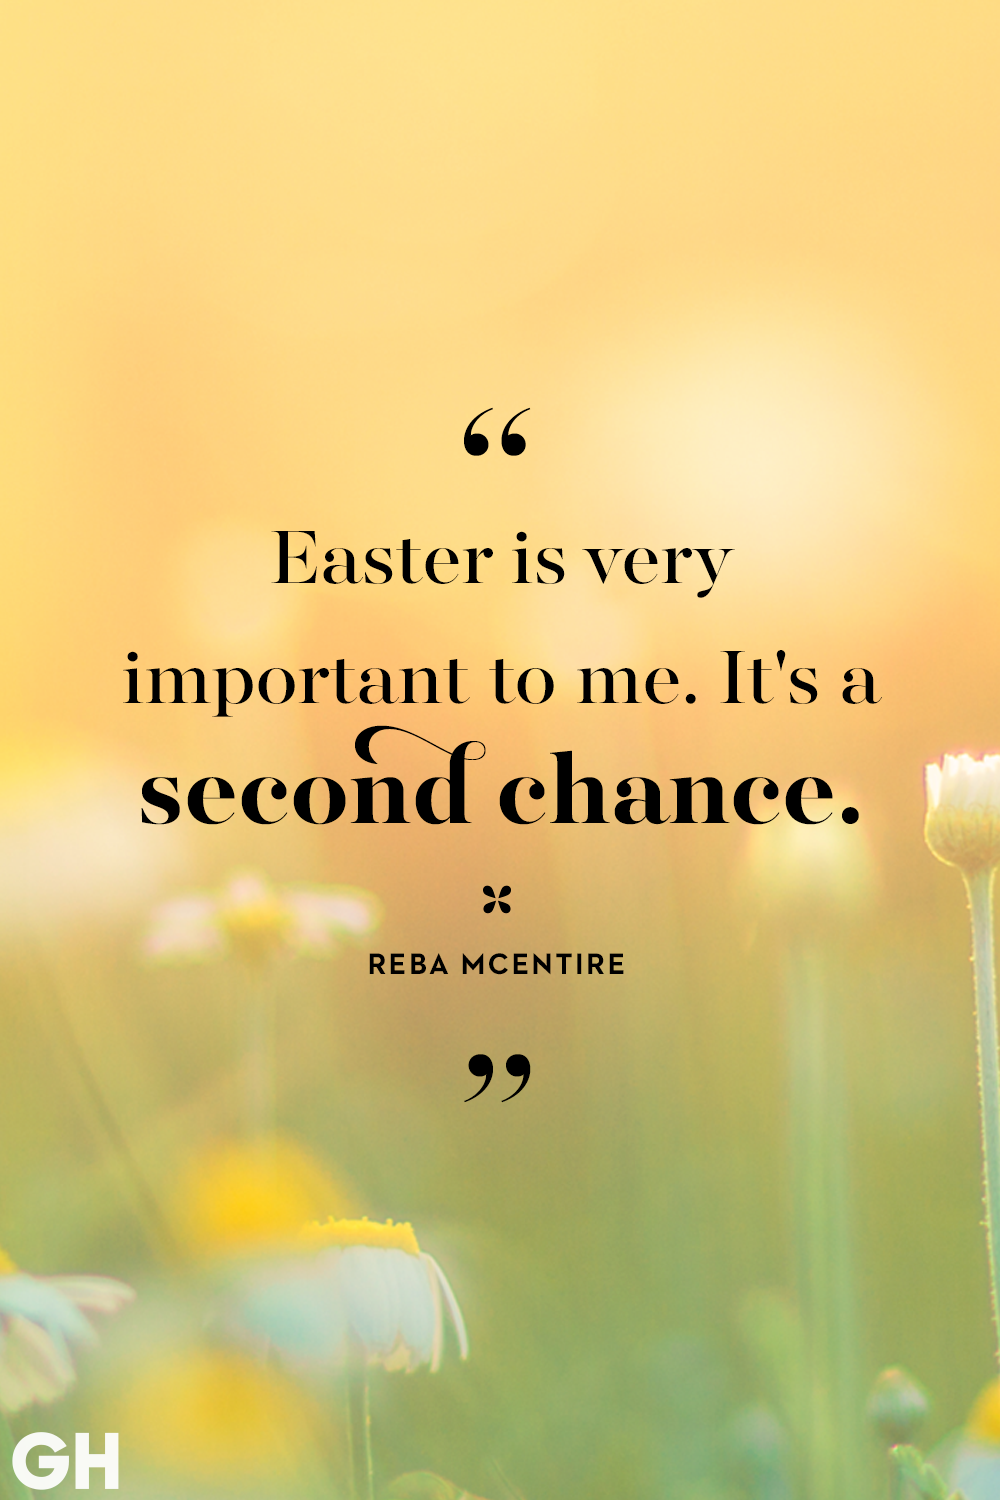 35 Best Easter Quotes - Famous Sayings About Hope and Spring